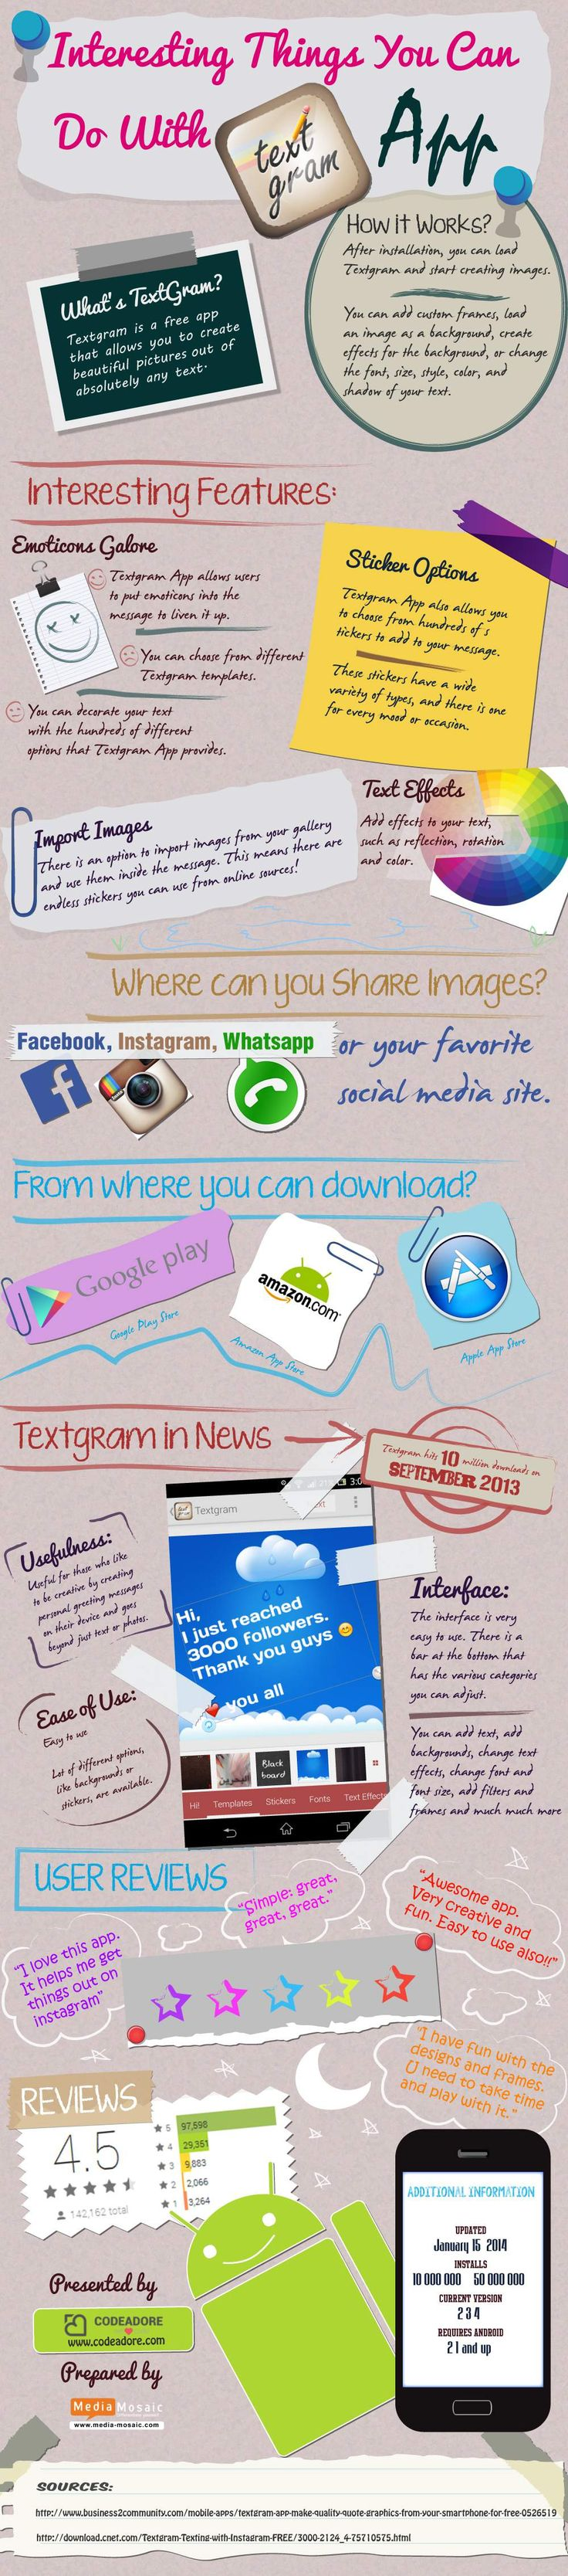 Interesting Things You Can do With Textgram App Infographic App Textgram